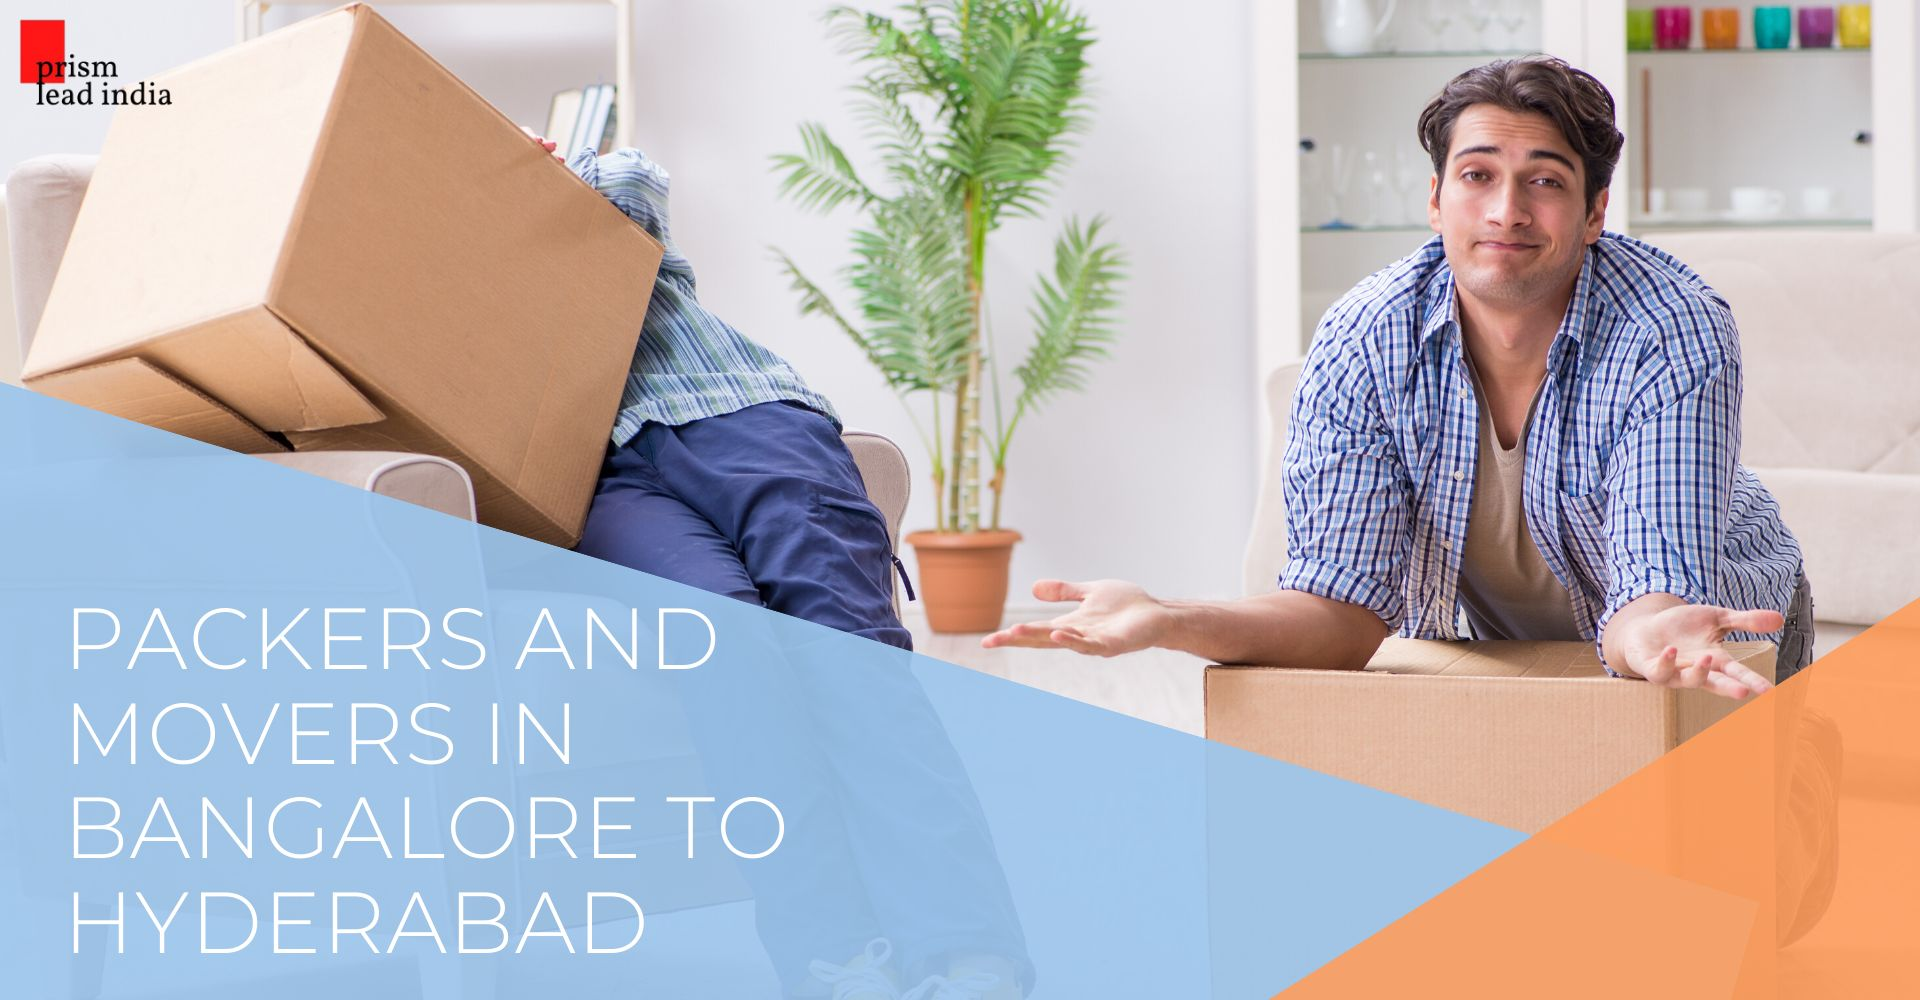 Packers and Movers in Bangalore to Hyderabad